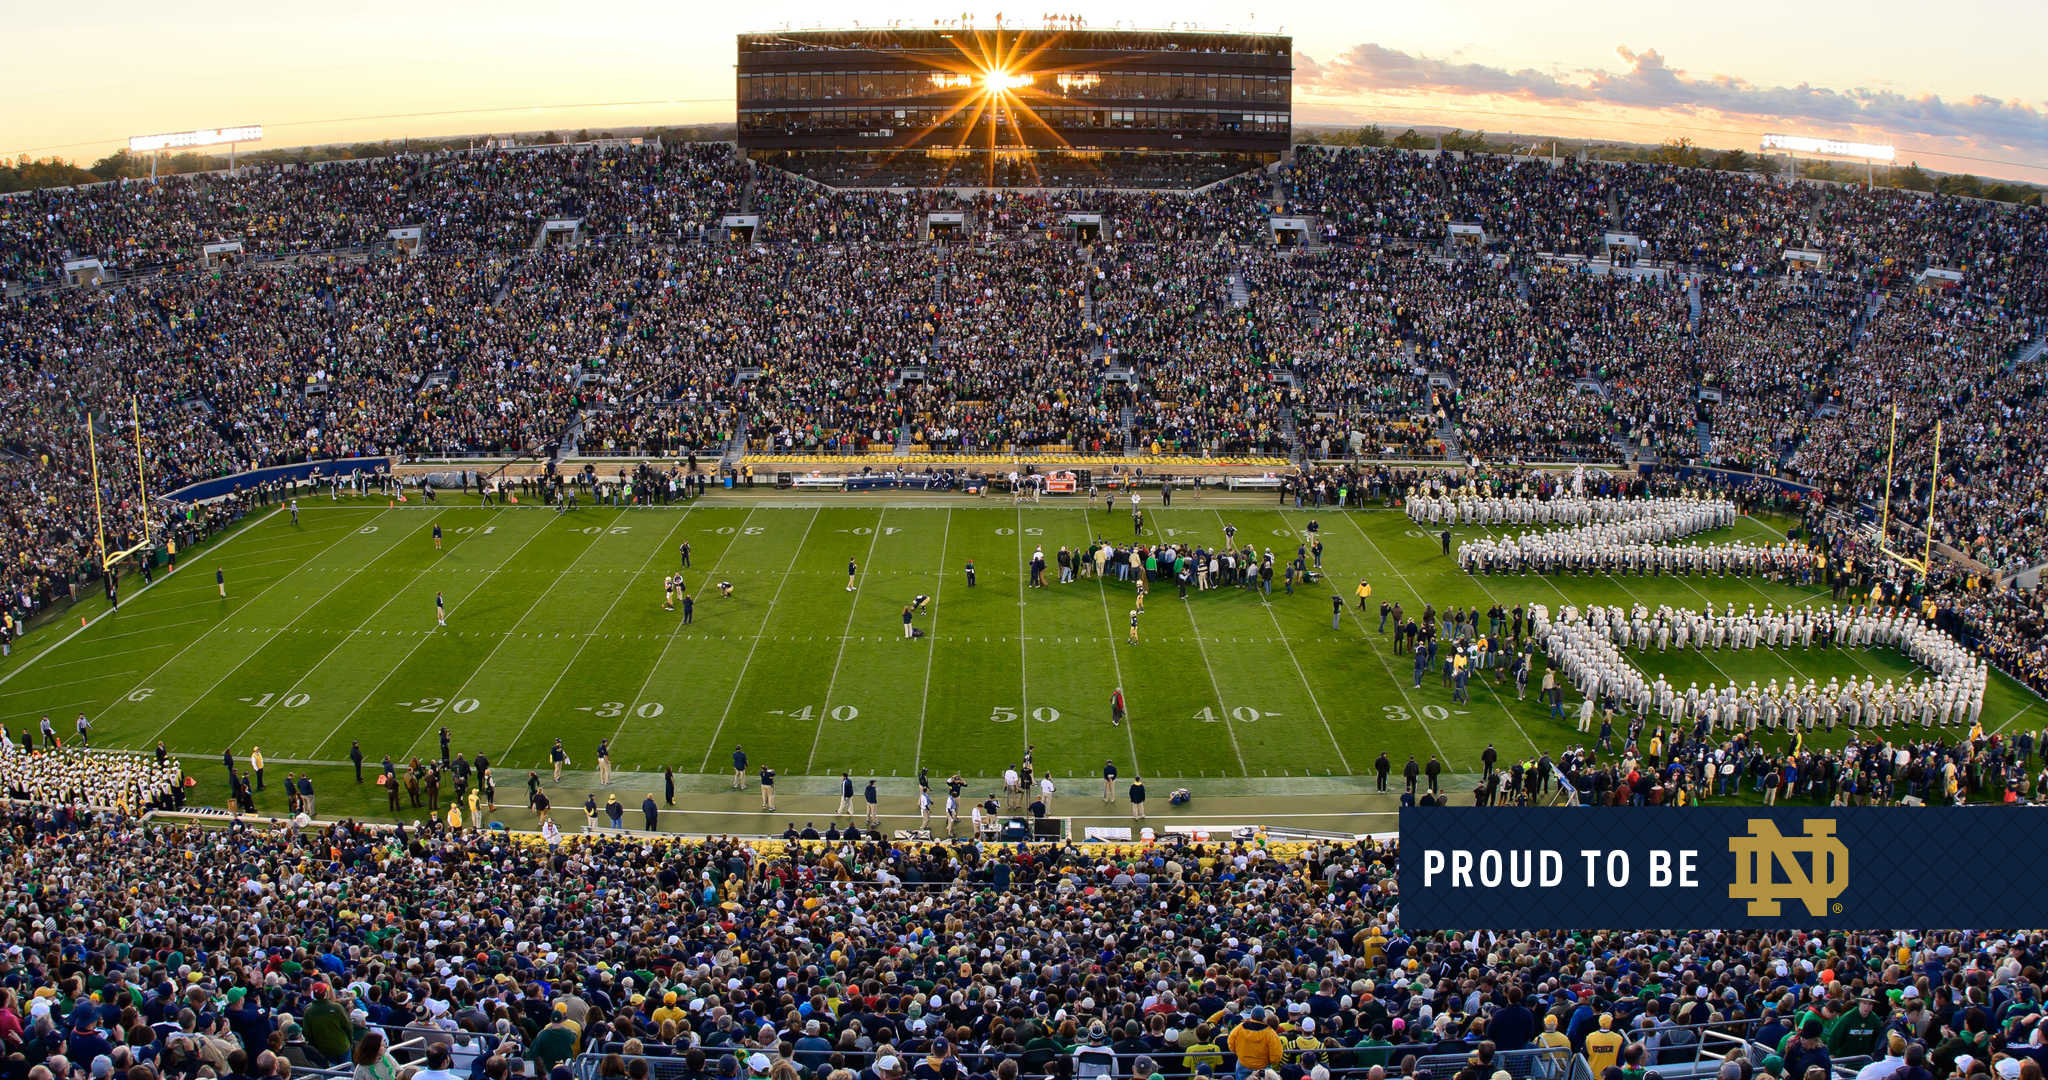 university of notre dame wallpaper - photo #24